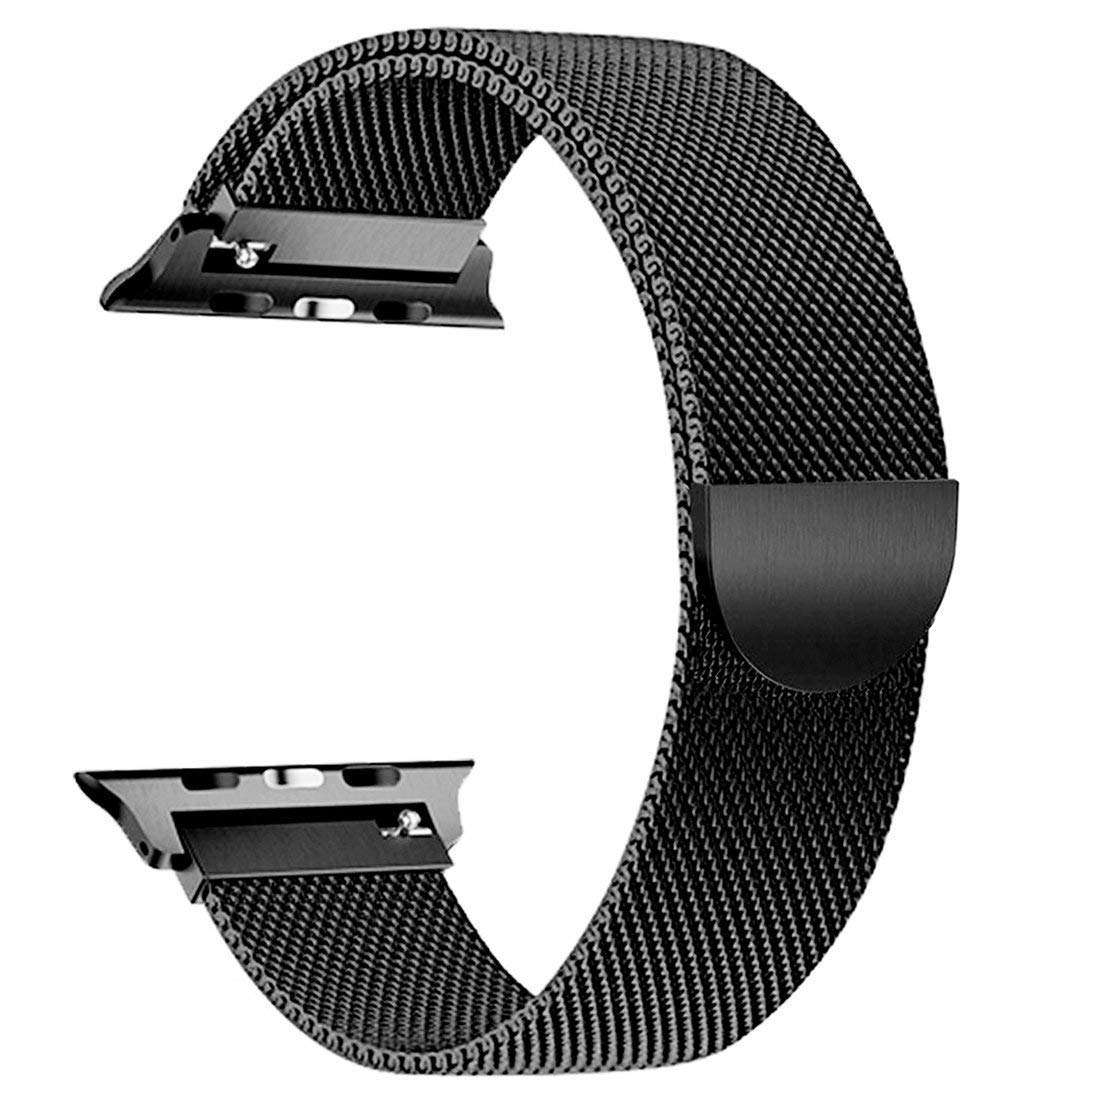 ACUTAS® Milanese Loop Stainless Steel Mesh Strap for Apple Watch iWatch Series 1/2/3/4 42MM 44MM (Black) (B07N1KX7NH) Amazon Price History, Amazon Price Tracker